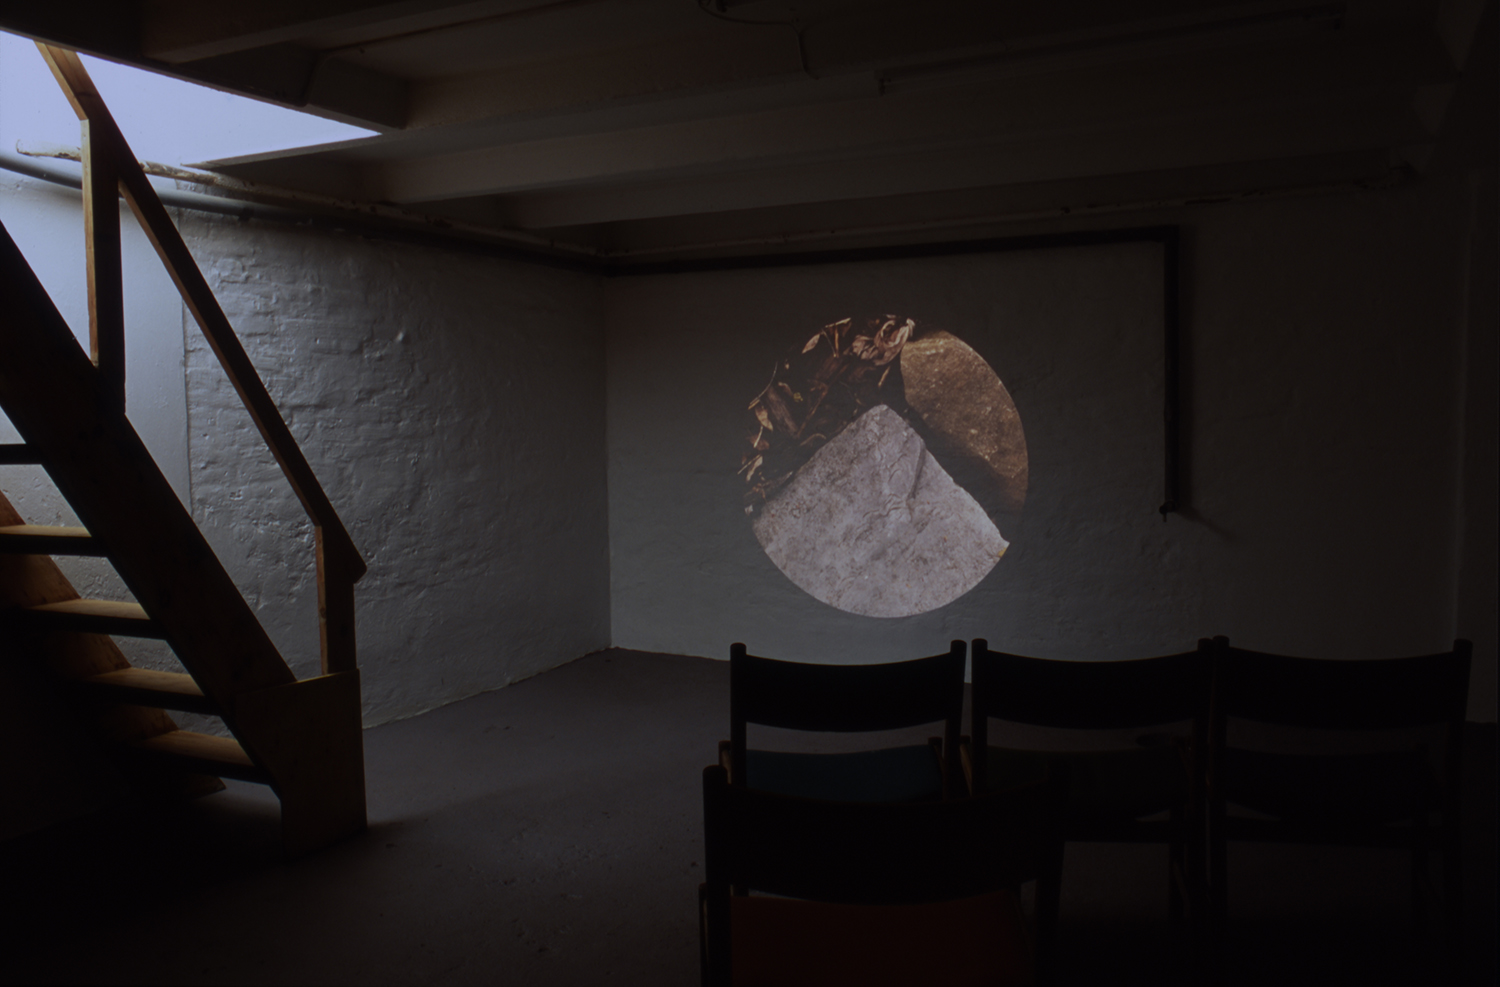 Mountain/Mirror-Window. Installation view.